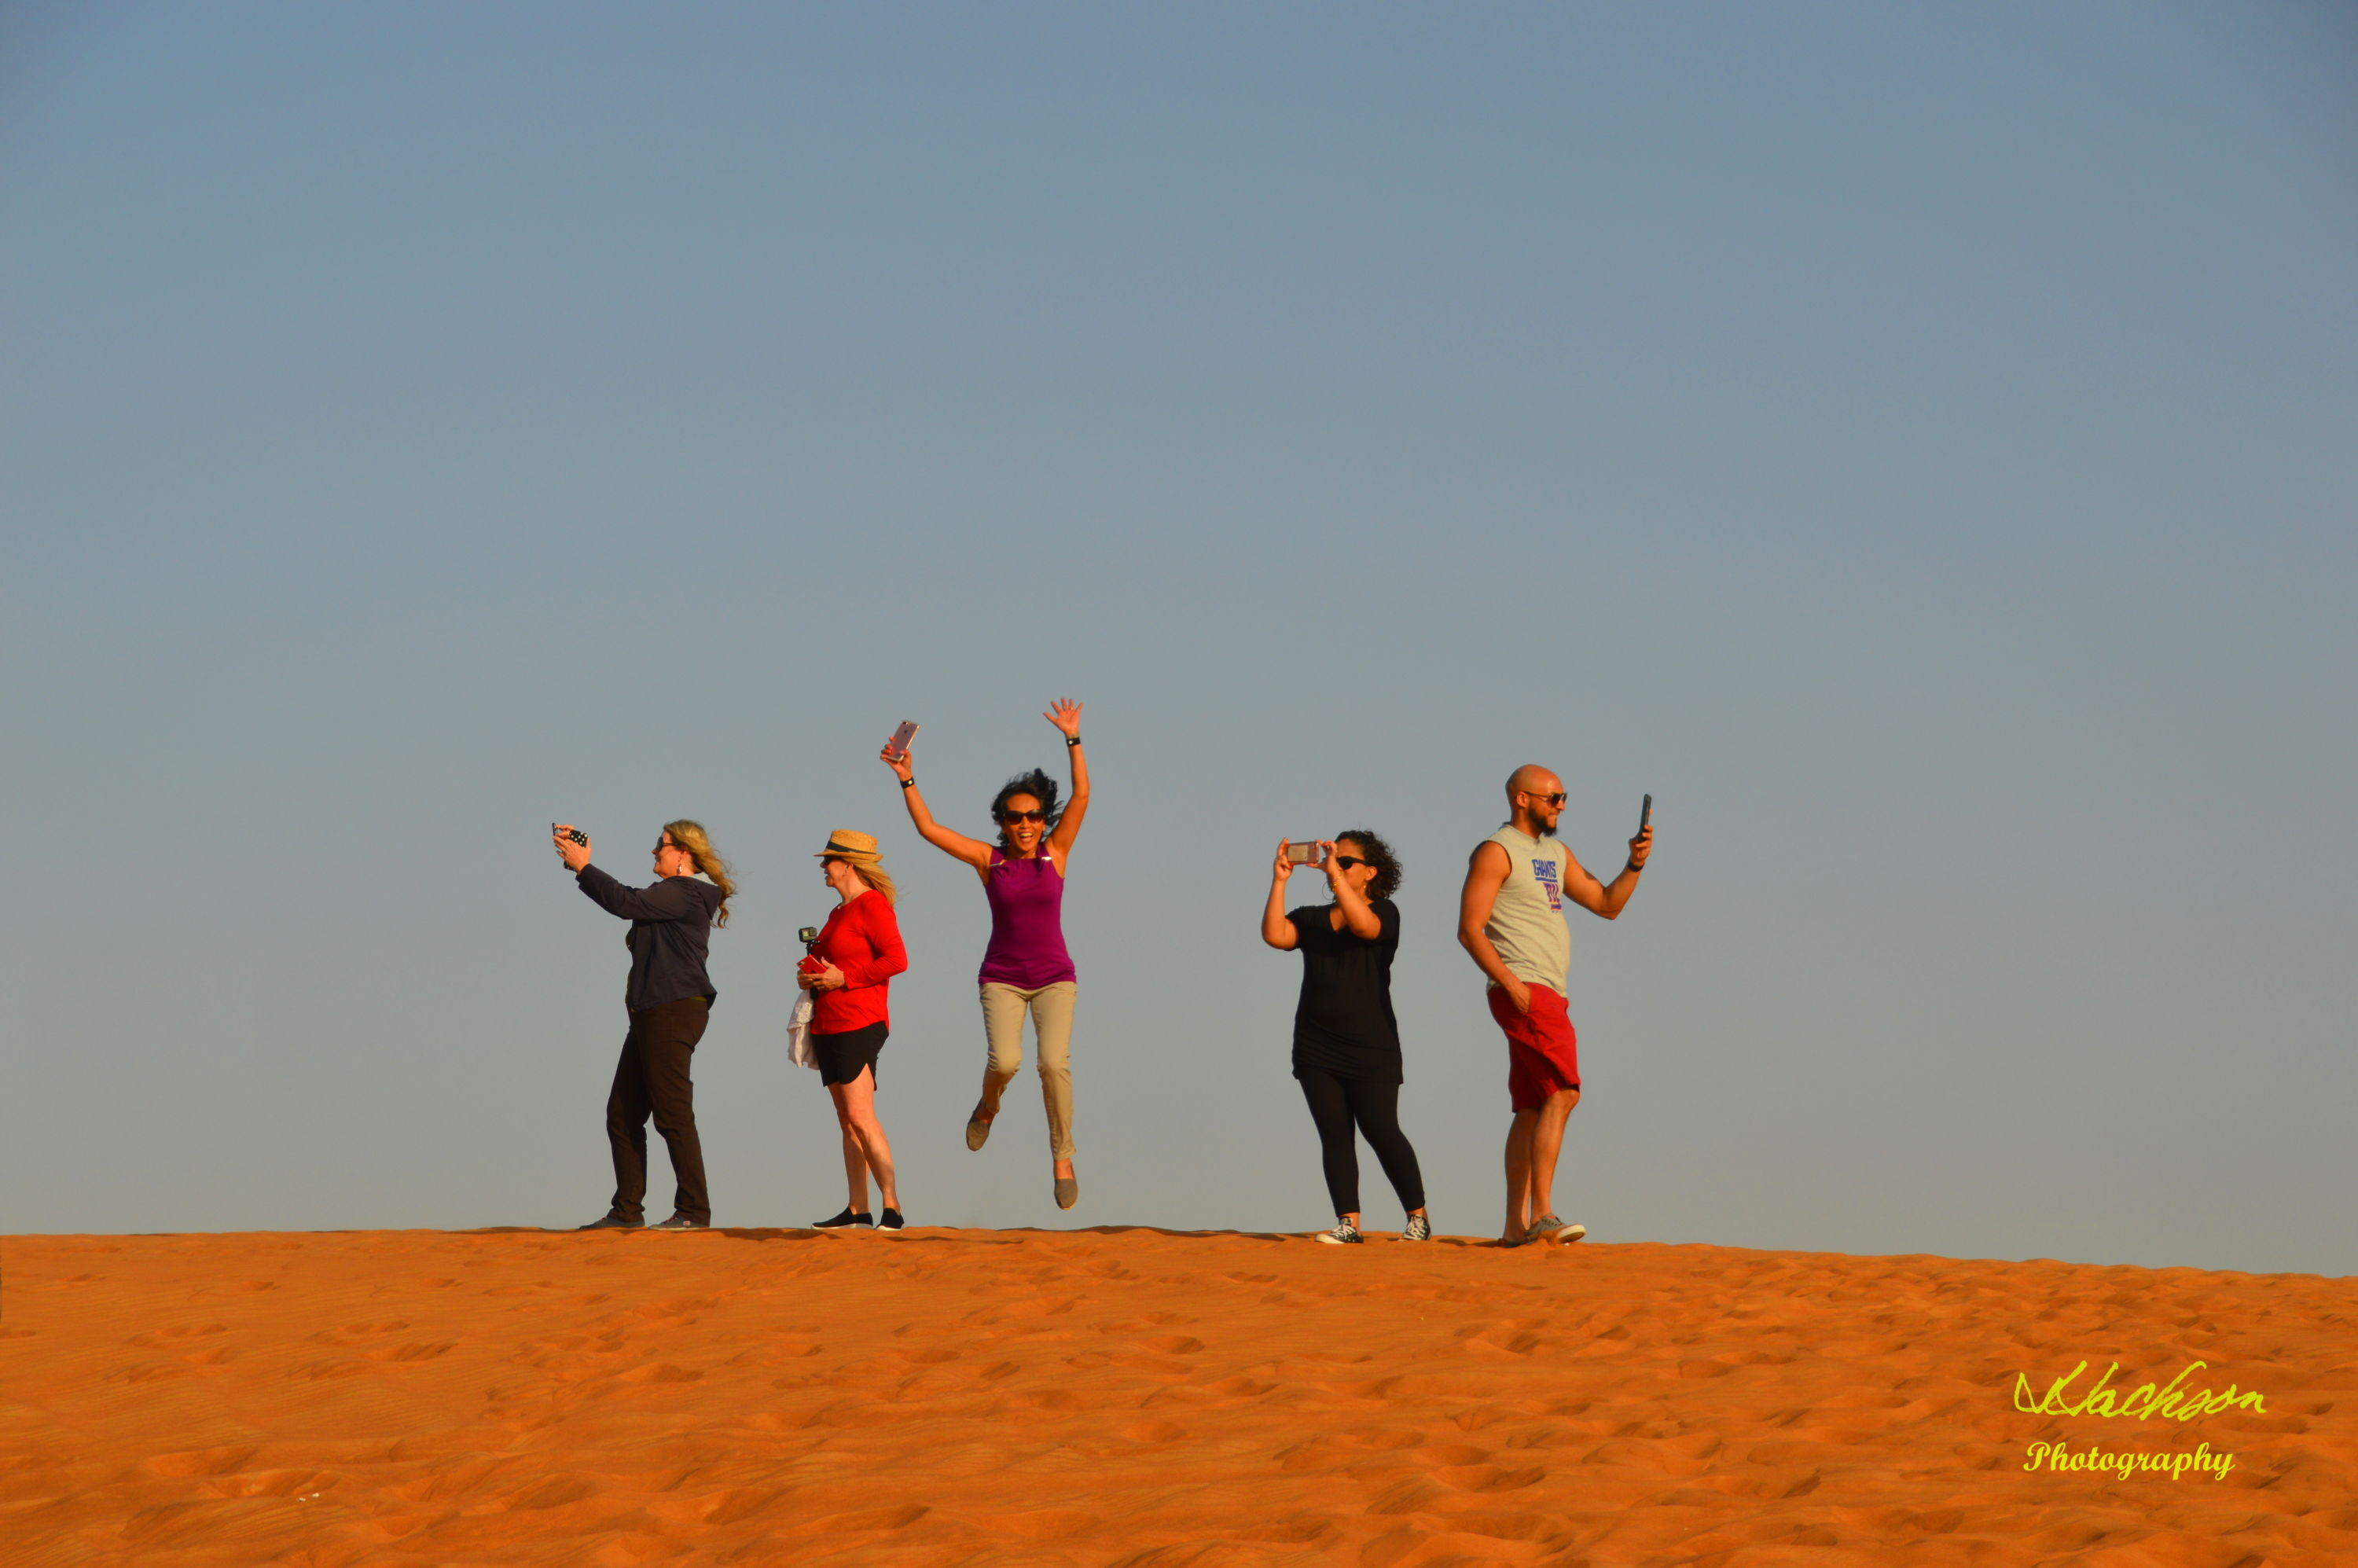 Photo of people jumping on a Dubai sand dune